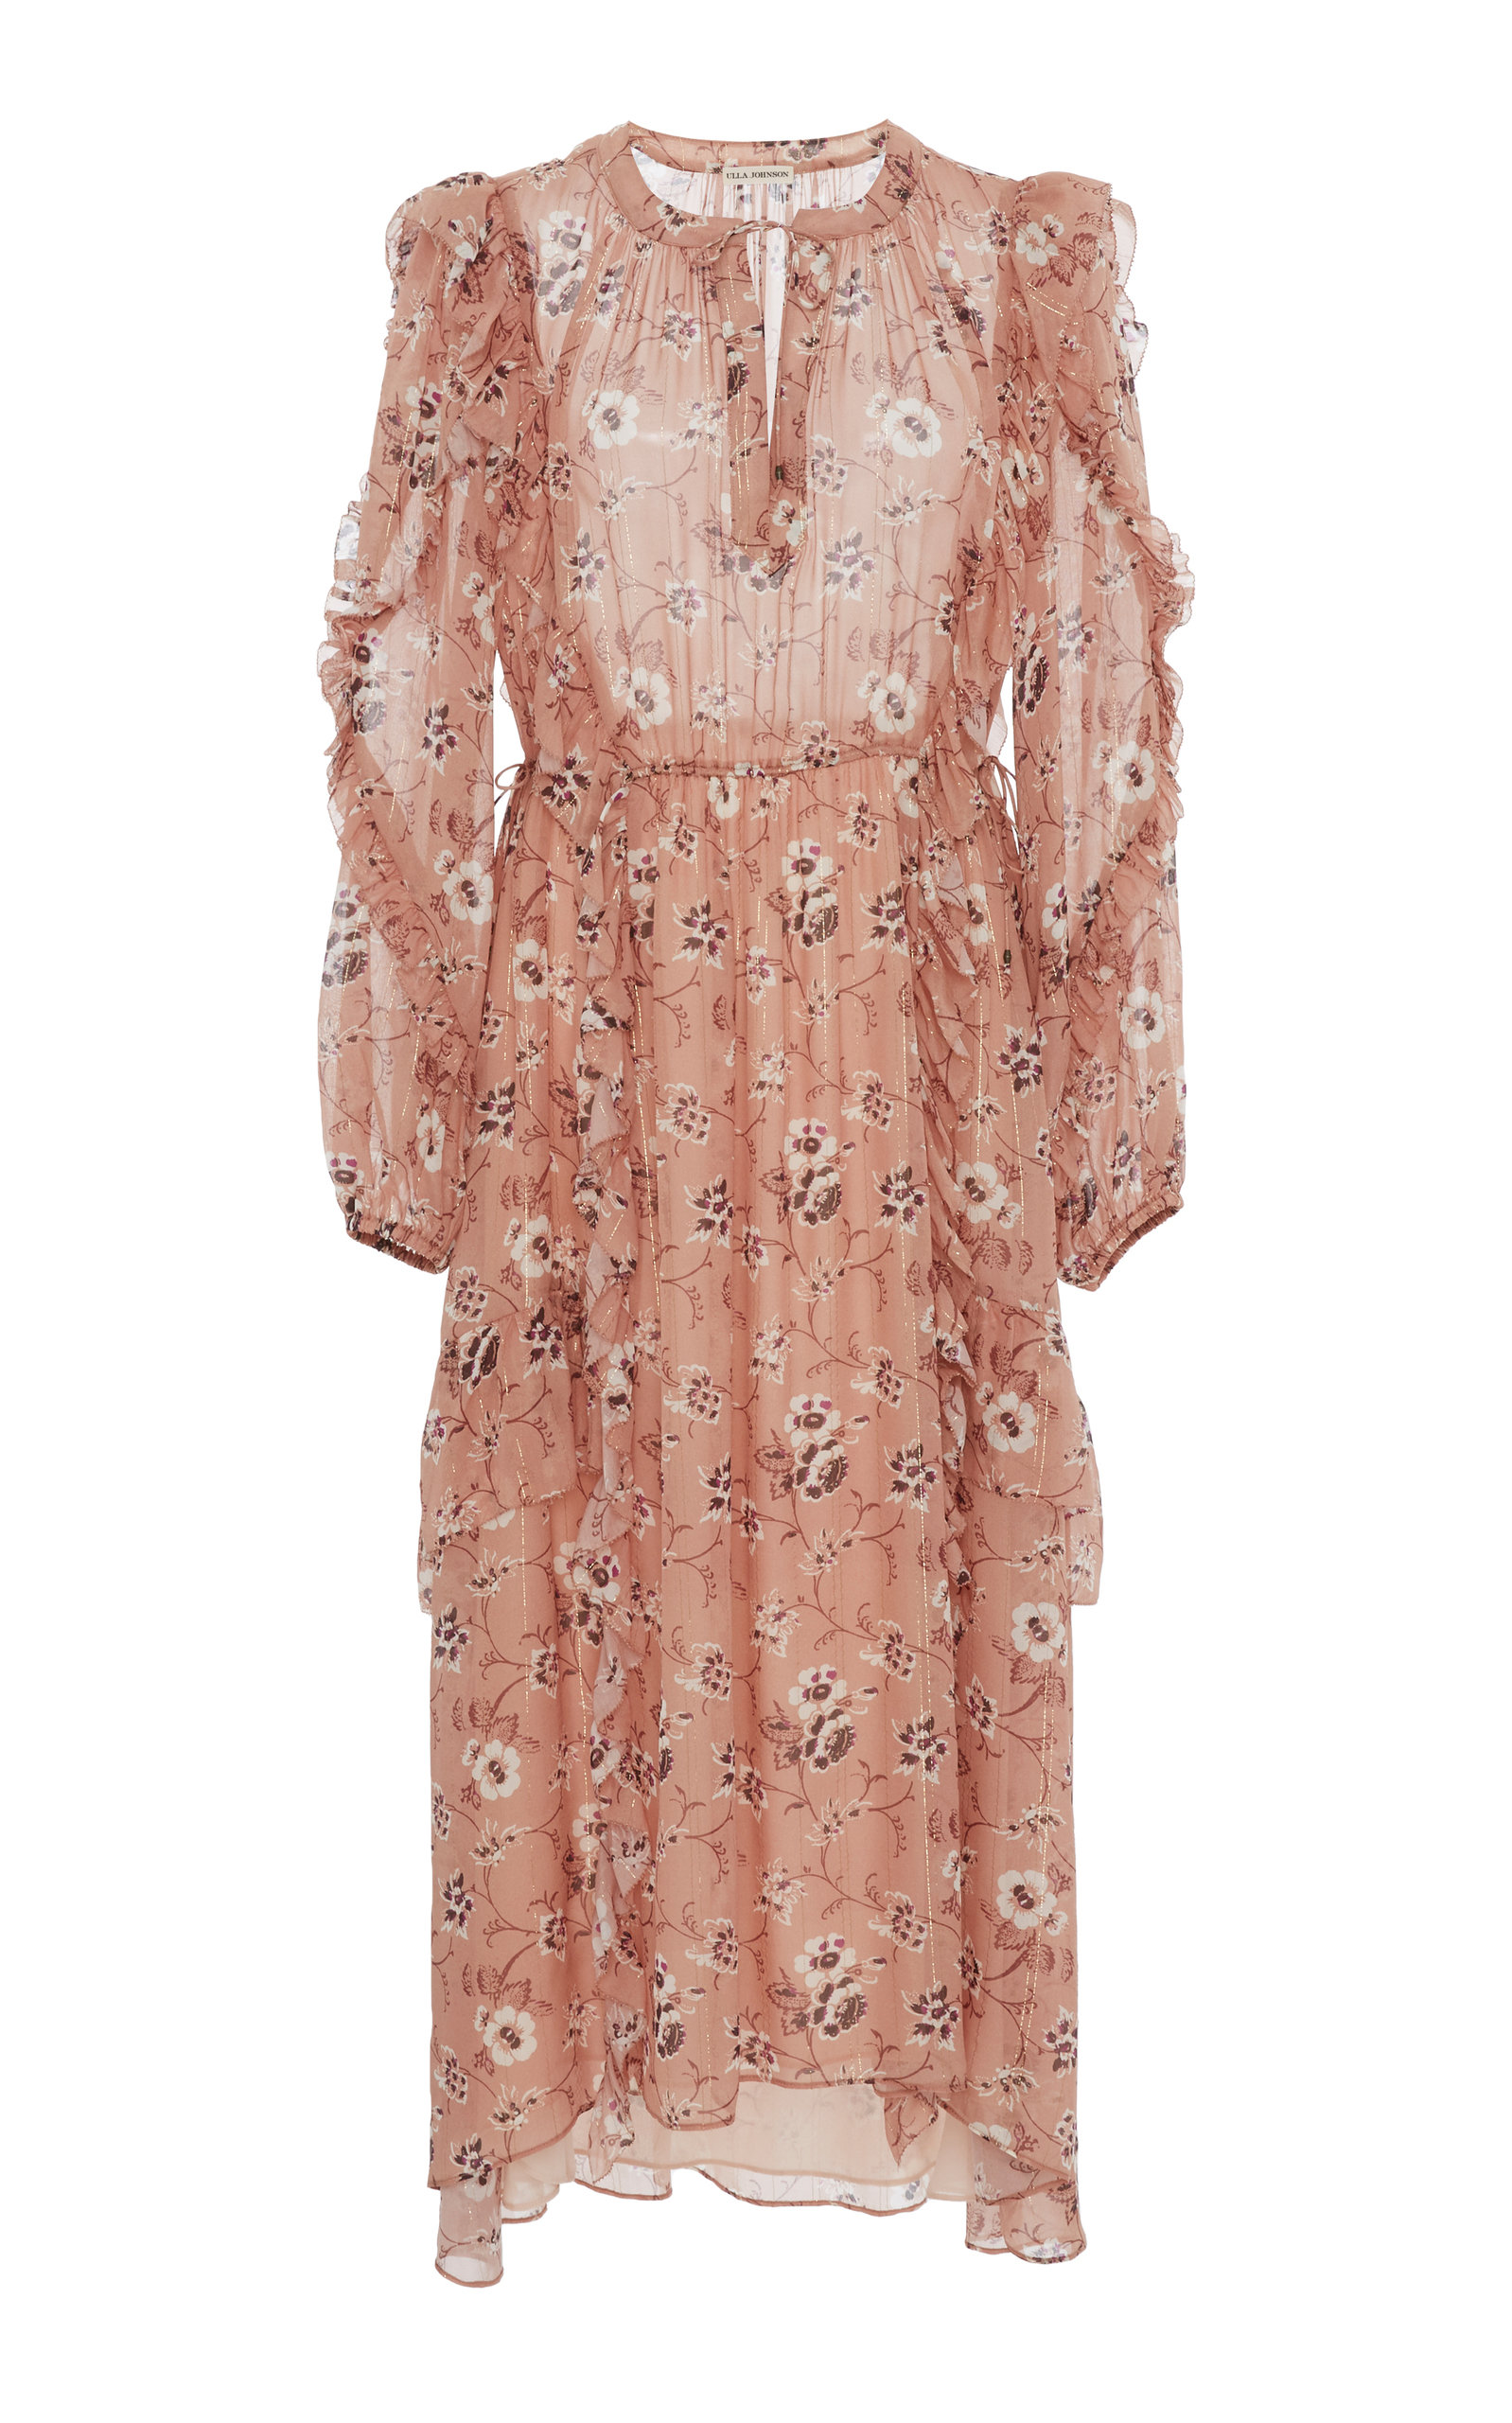 30b3a6191d Ellette Dress by Ulla Johnson